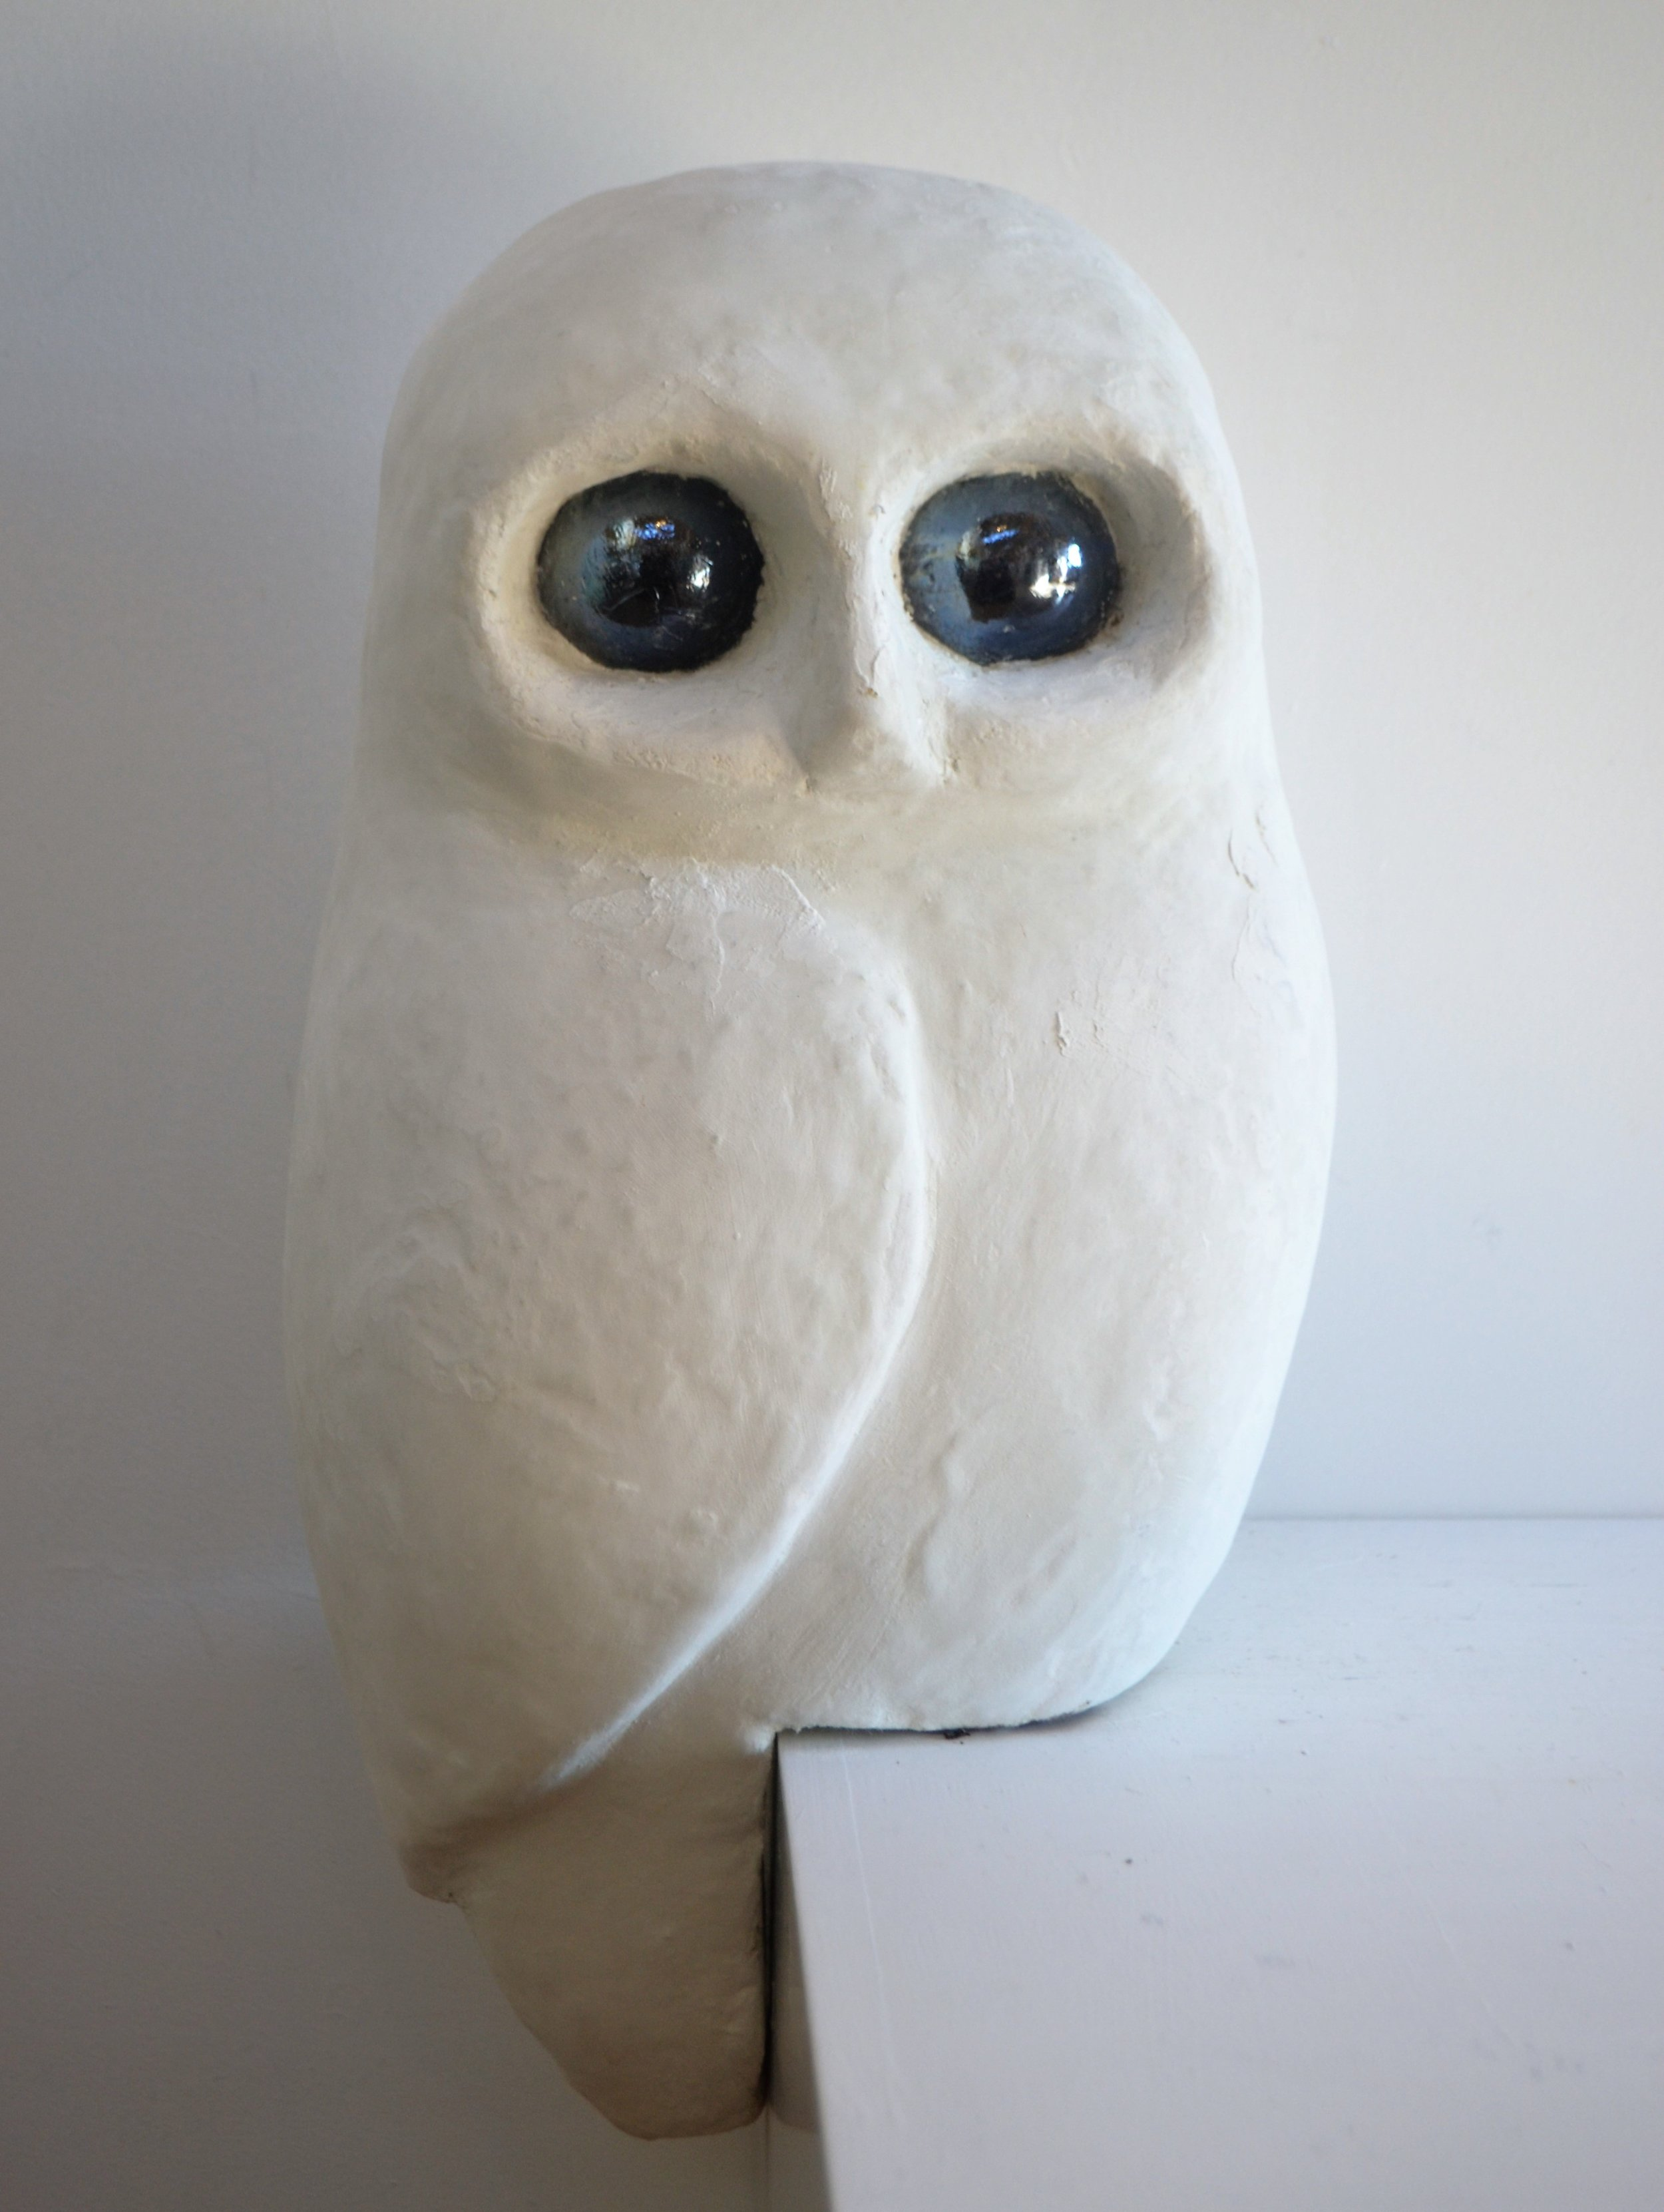 Owl  John Phillips, artis fiberclay, indoor/outdoor, mounted on peg (inc.)  Small - $290.00 ea  Large - $320.00 ea (check availability) Small owl on plinth - $350.00 (three available)